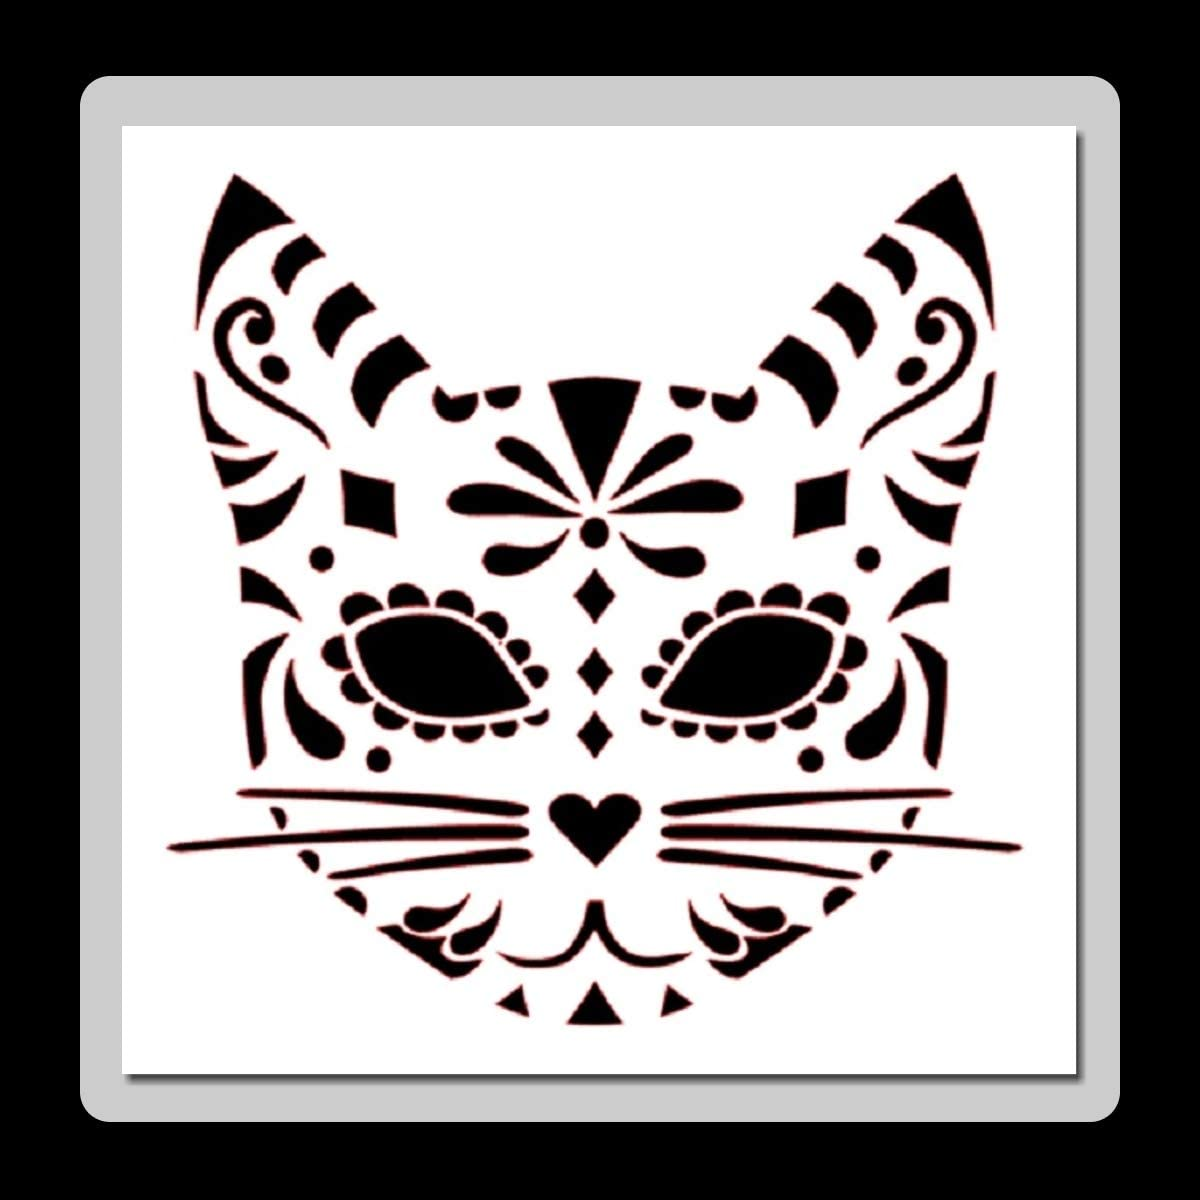 Amazon Com 8 X 8 Inch Sugar Candy Skull Cat Face Stencil Template Day Of The Dead Mexican Halloween